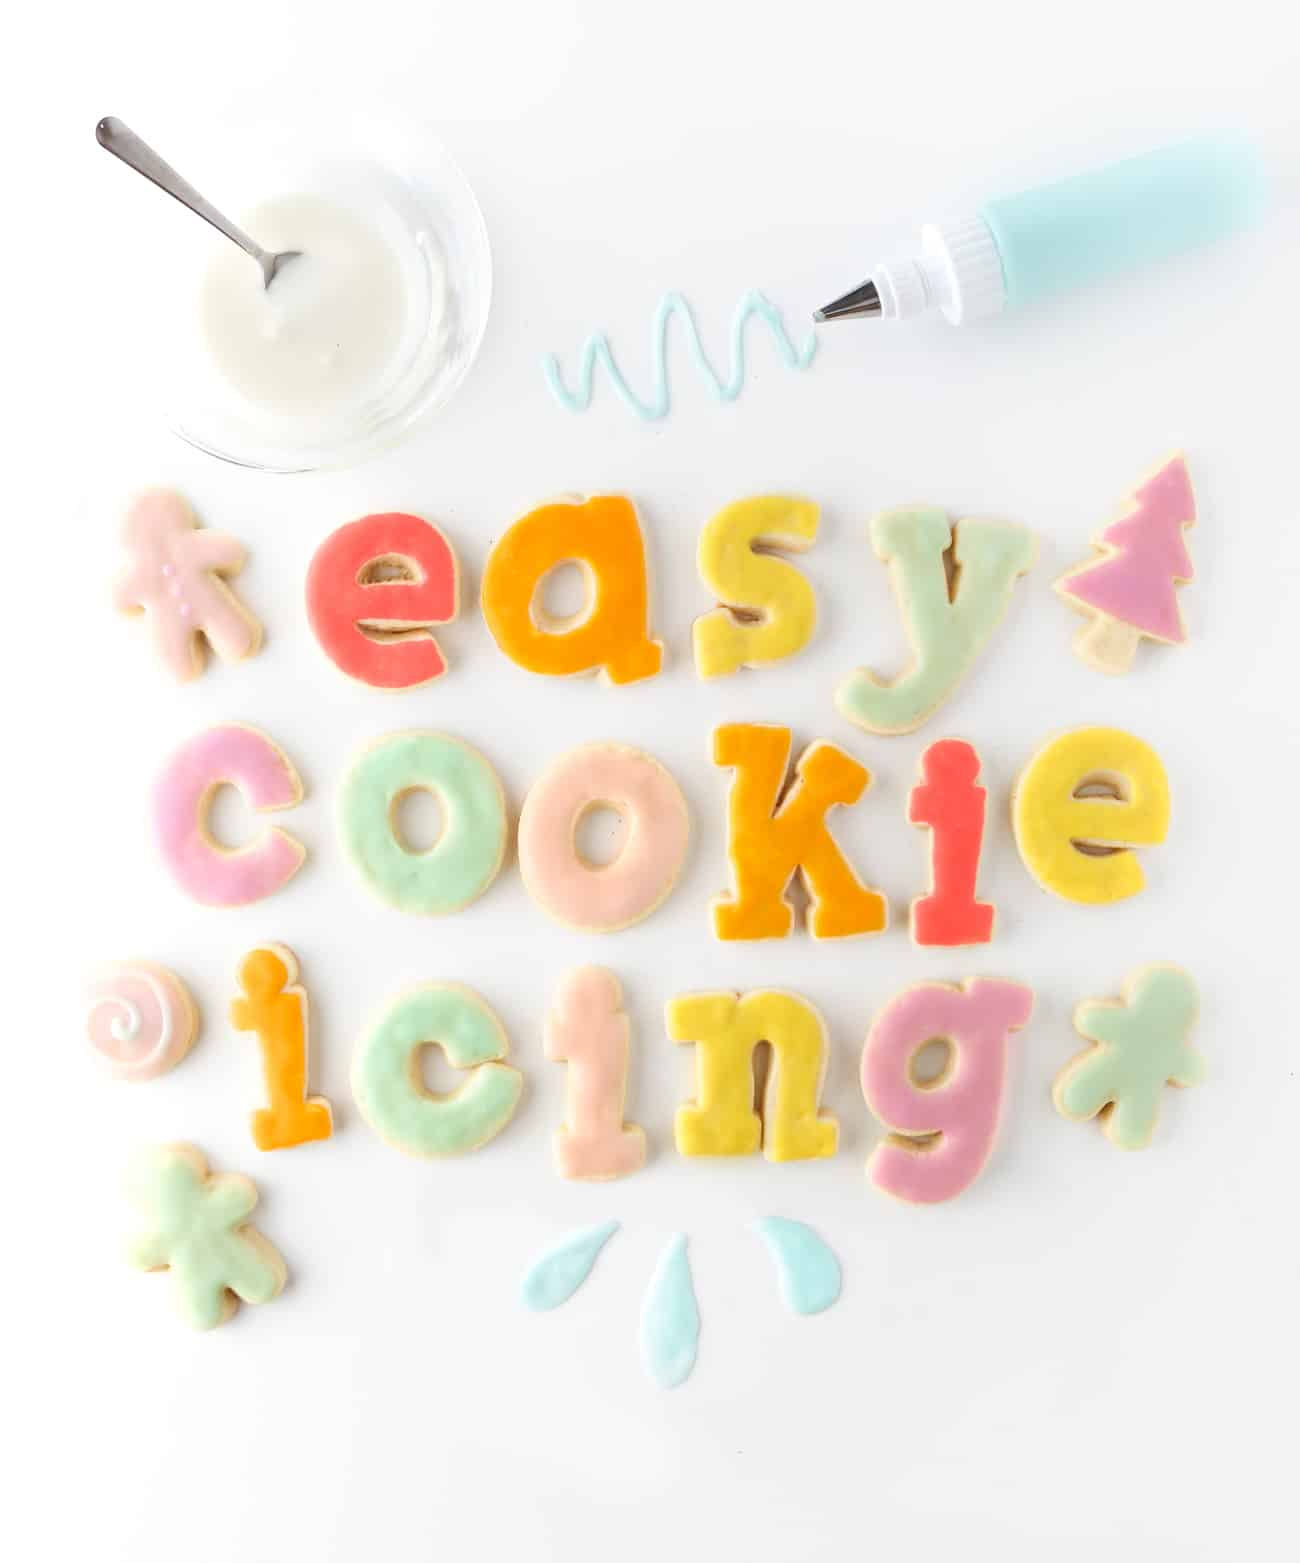 Rainbow sugar cookies spelling out the words Easy Sugar Cookie Icing. White bowl of icing with bottle of blue icing.